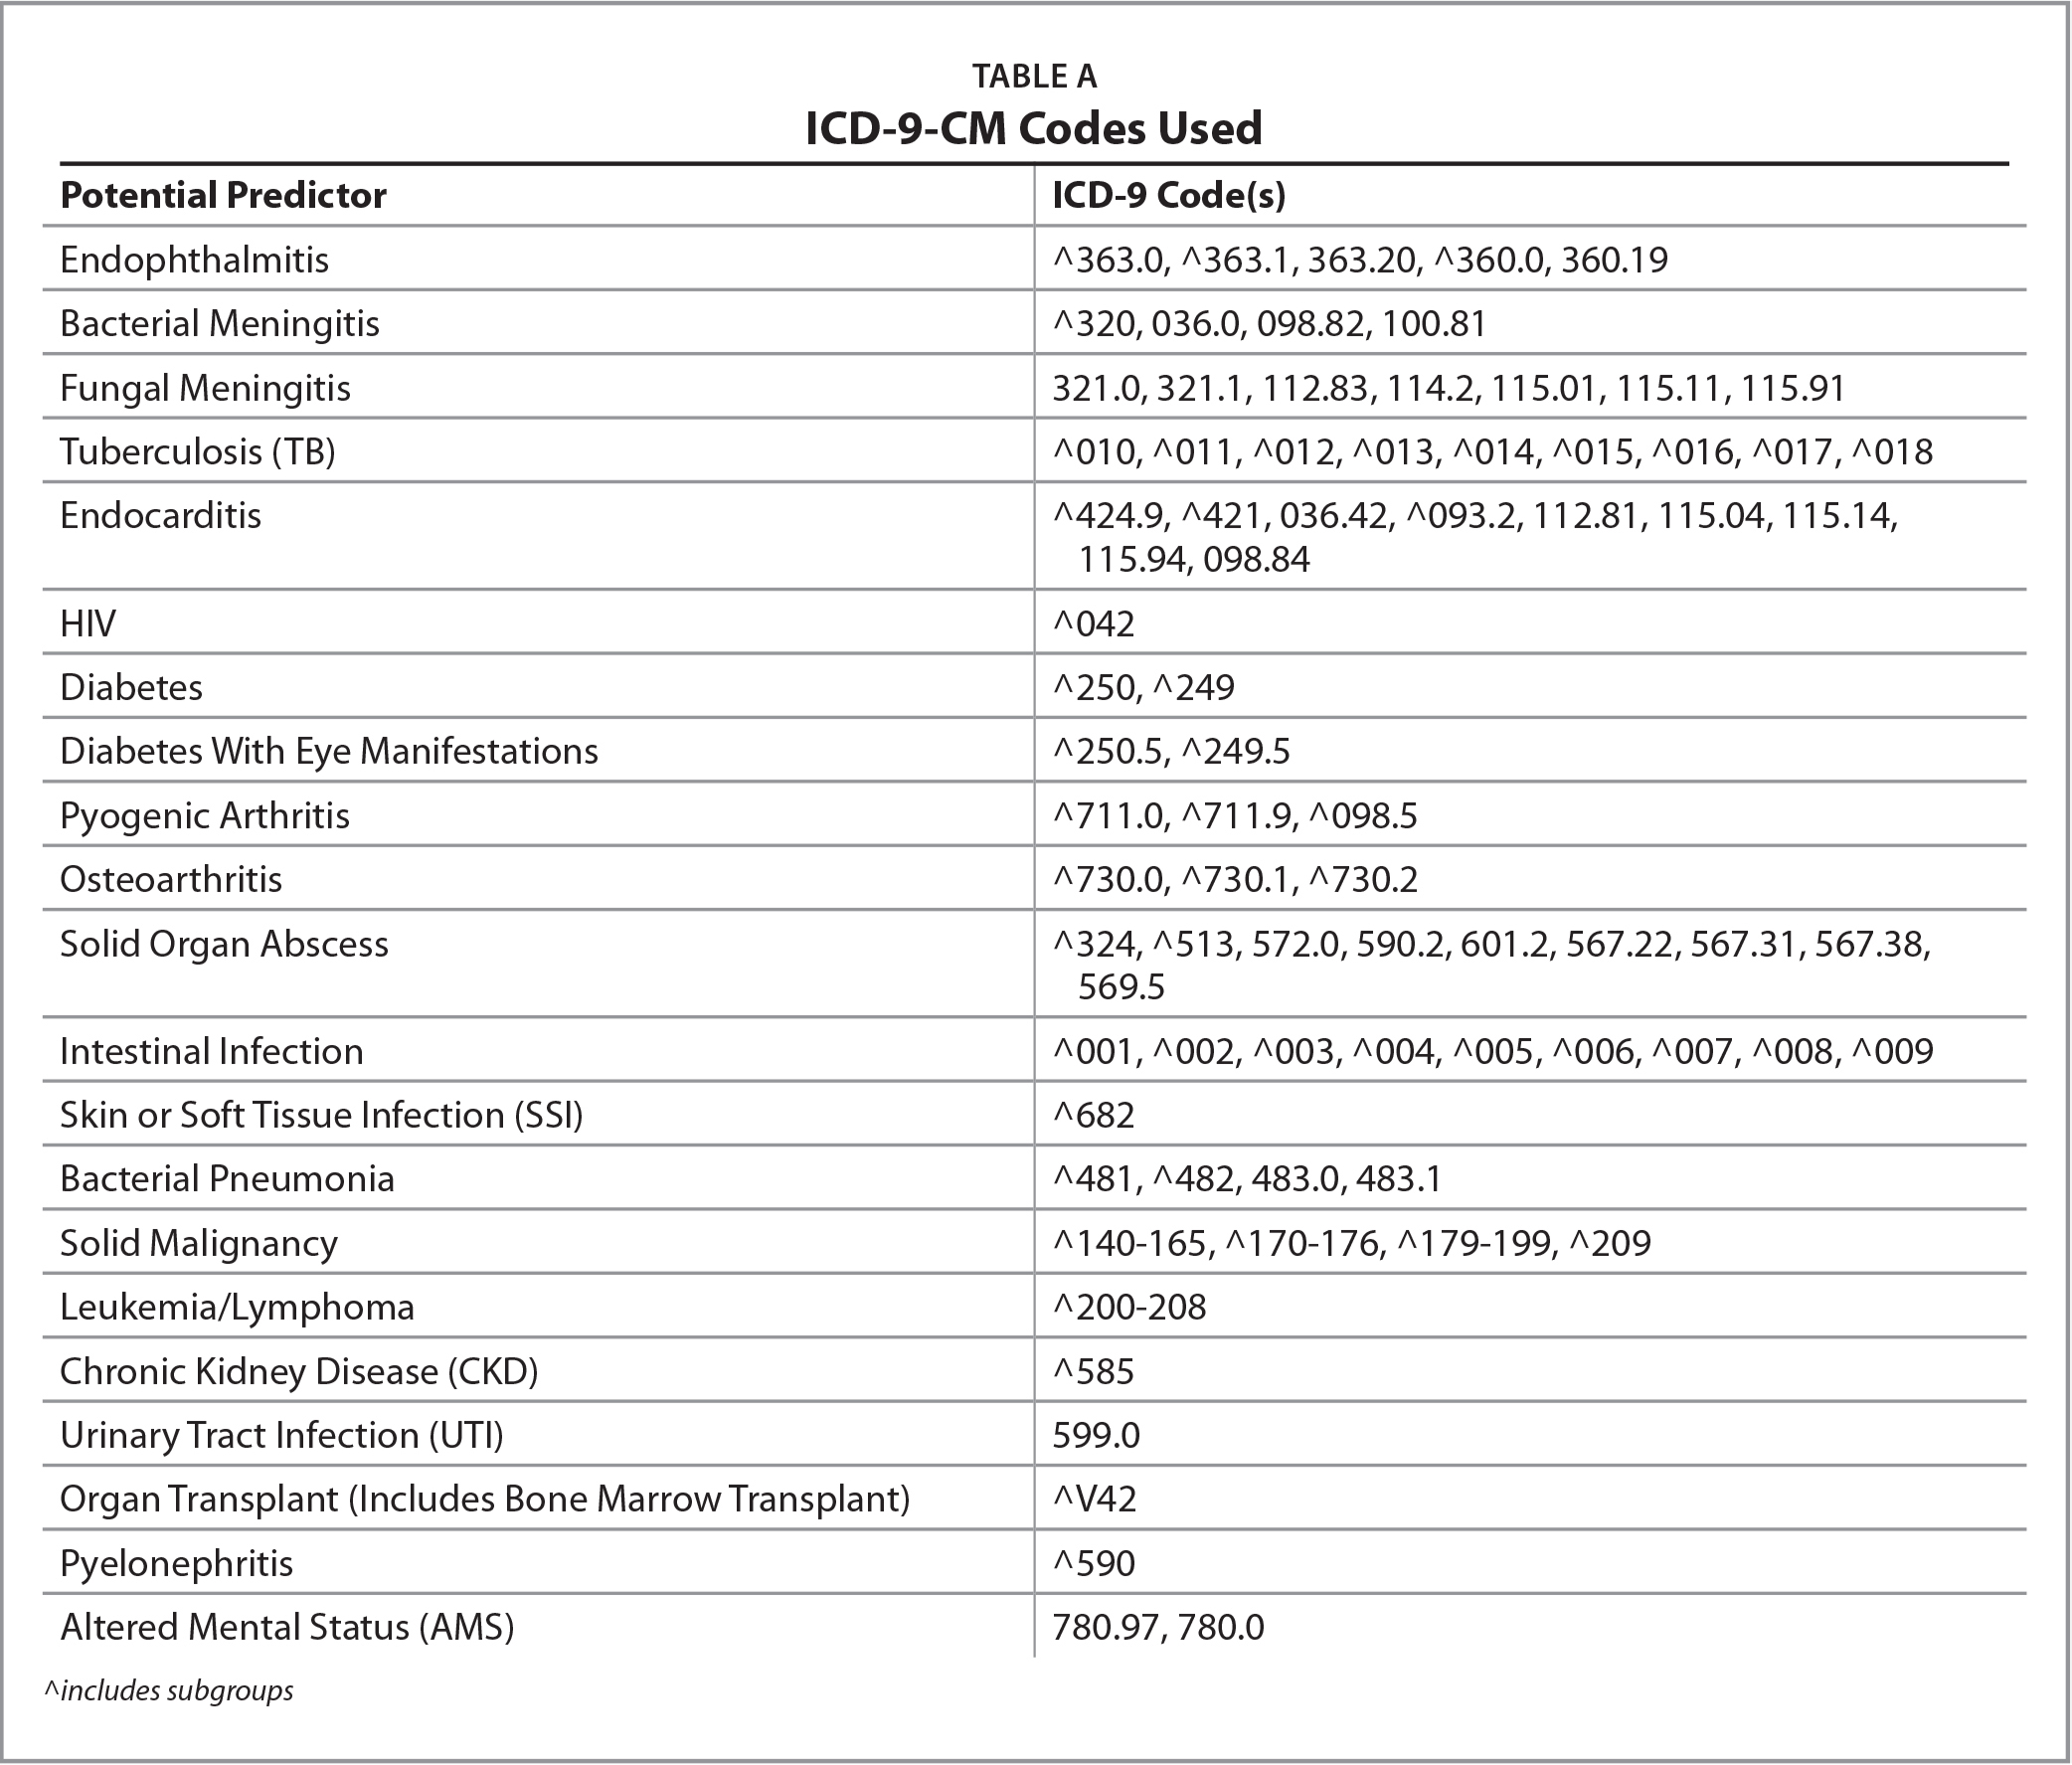 ICD-9-CM Codes Used